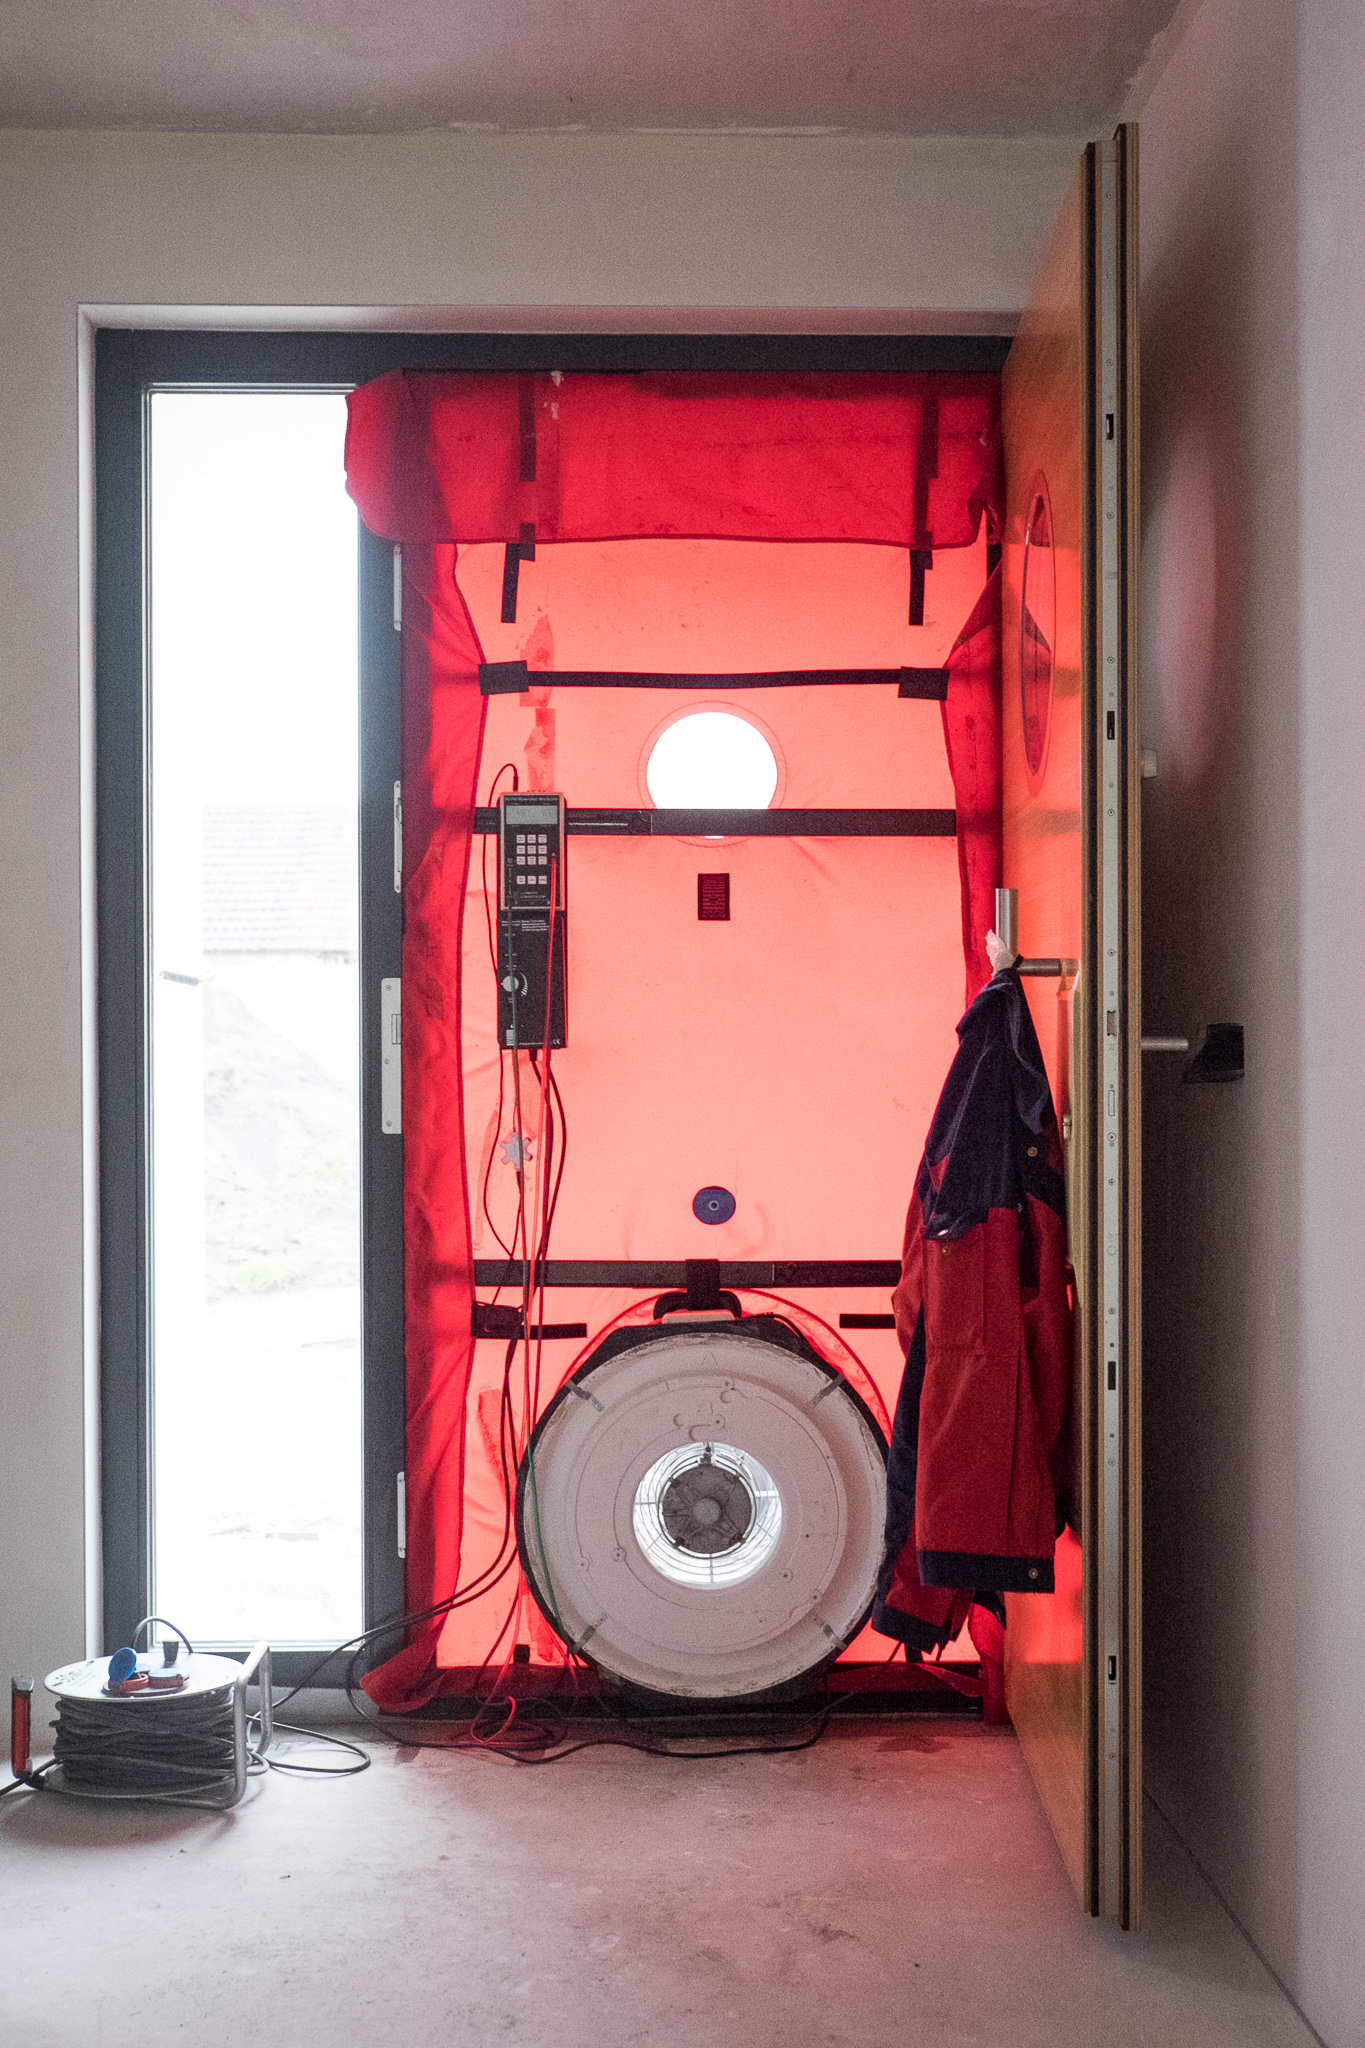 blower door test ein haus f r den zwerg. Black Bedroom Furniture Sets. Home Design Ideas